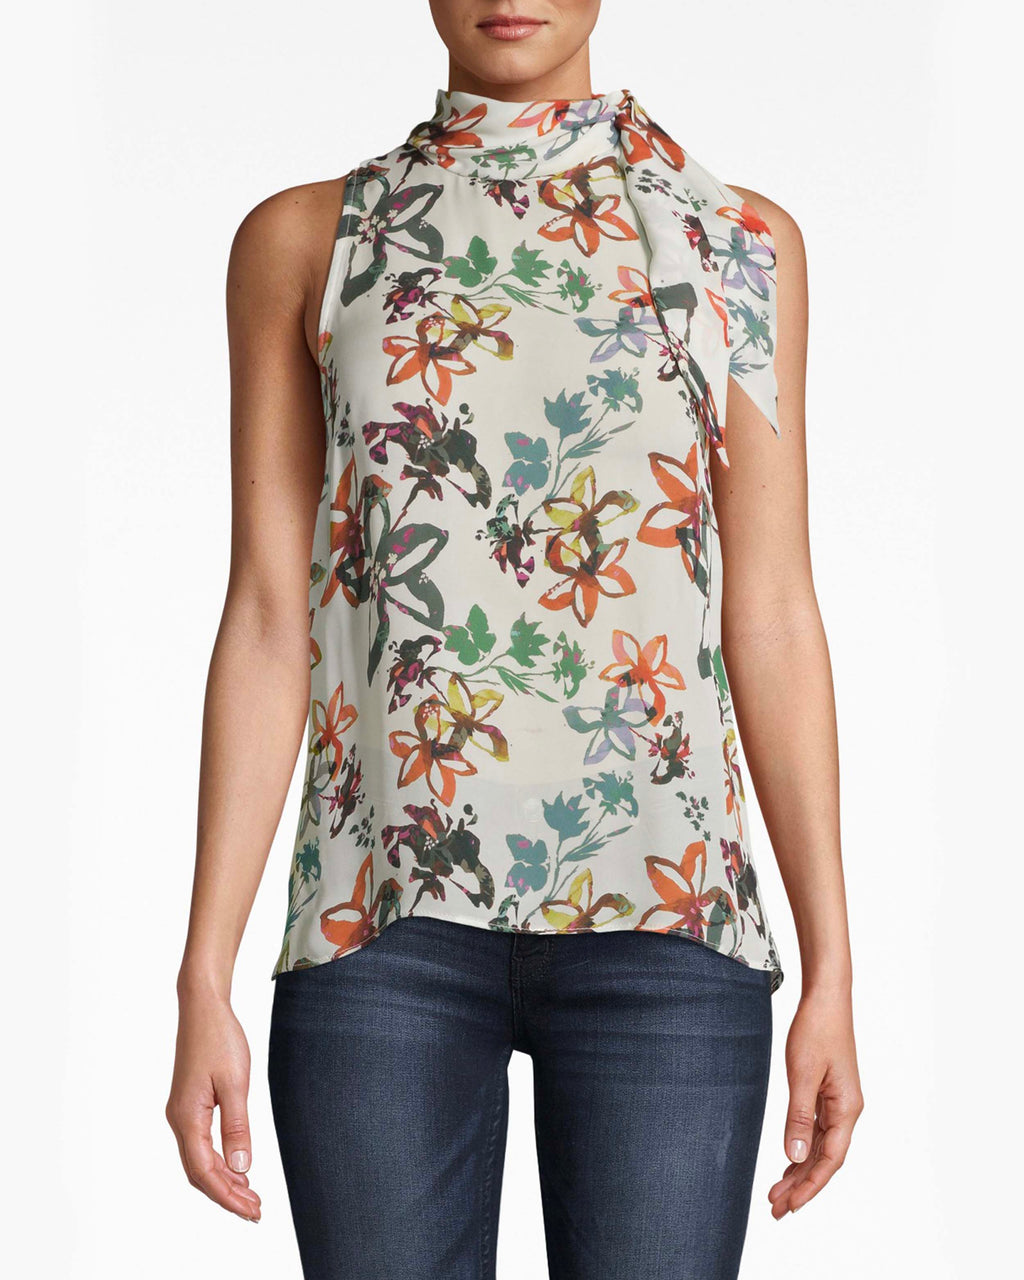 BA10171 - AUTUMN DREAM SILK STOCK TIE BLOUSE - tops - blouses - We're dreaming of Autumn. This silk sleeveless blouse is perfect with denim, featuring a turtleneck tie that adds a new element of chic.